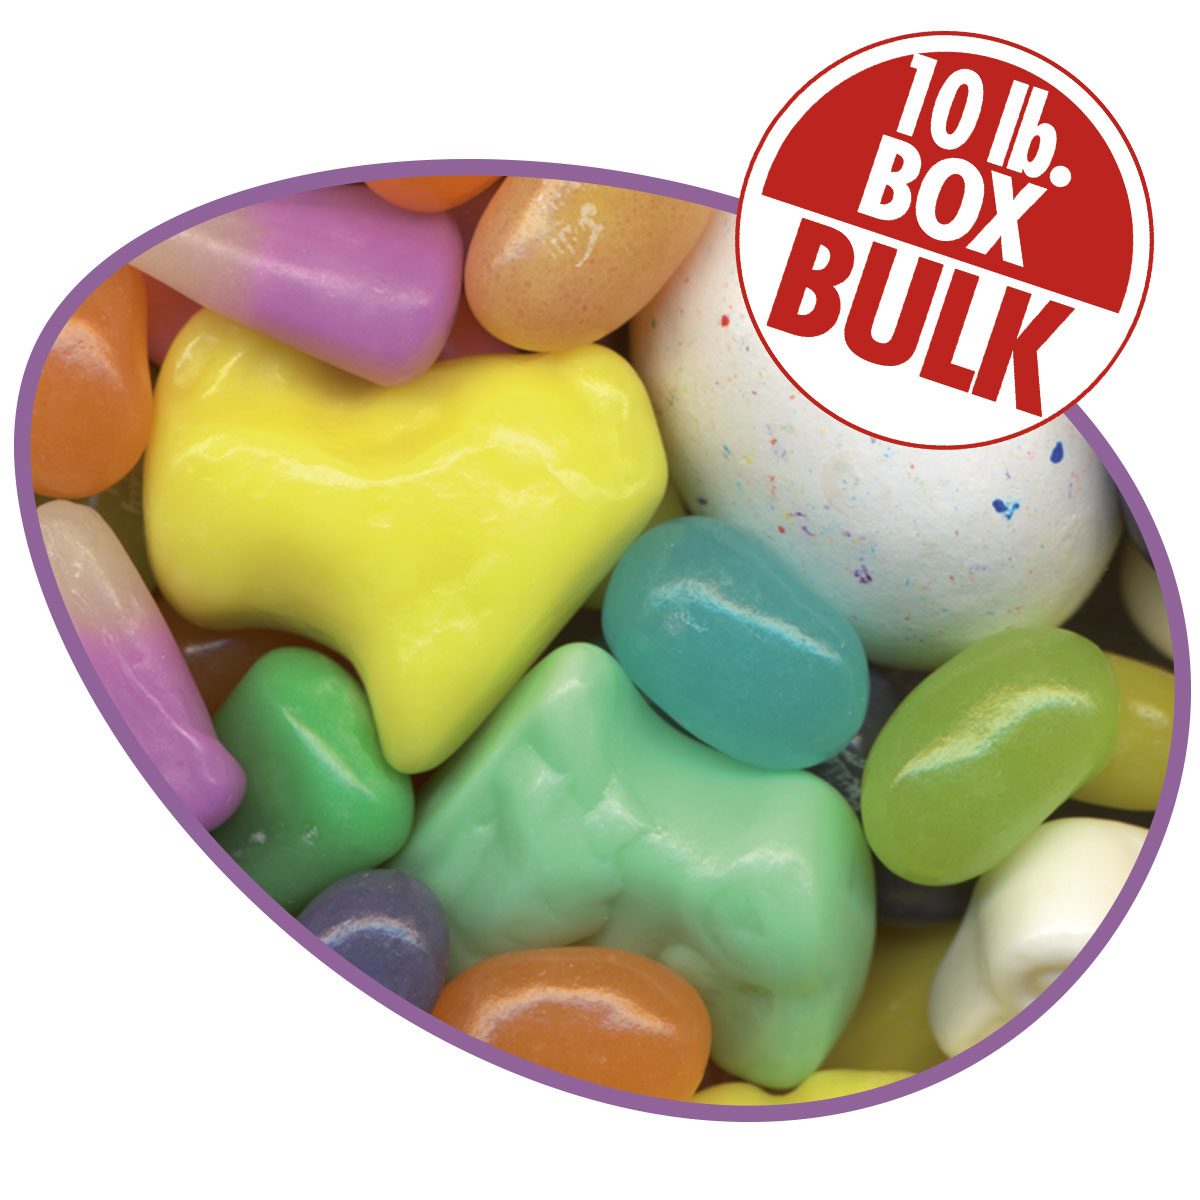 Deluxe Easter Mix -10 lbs bulk